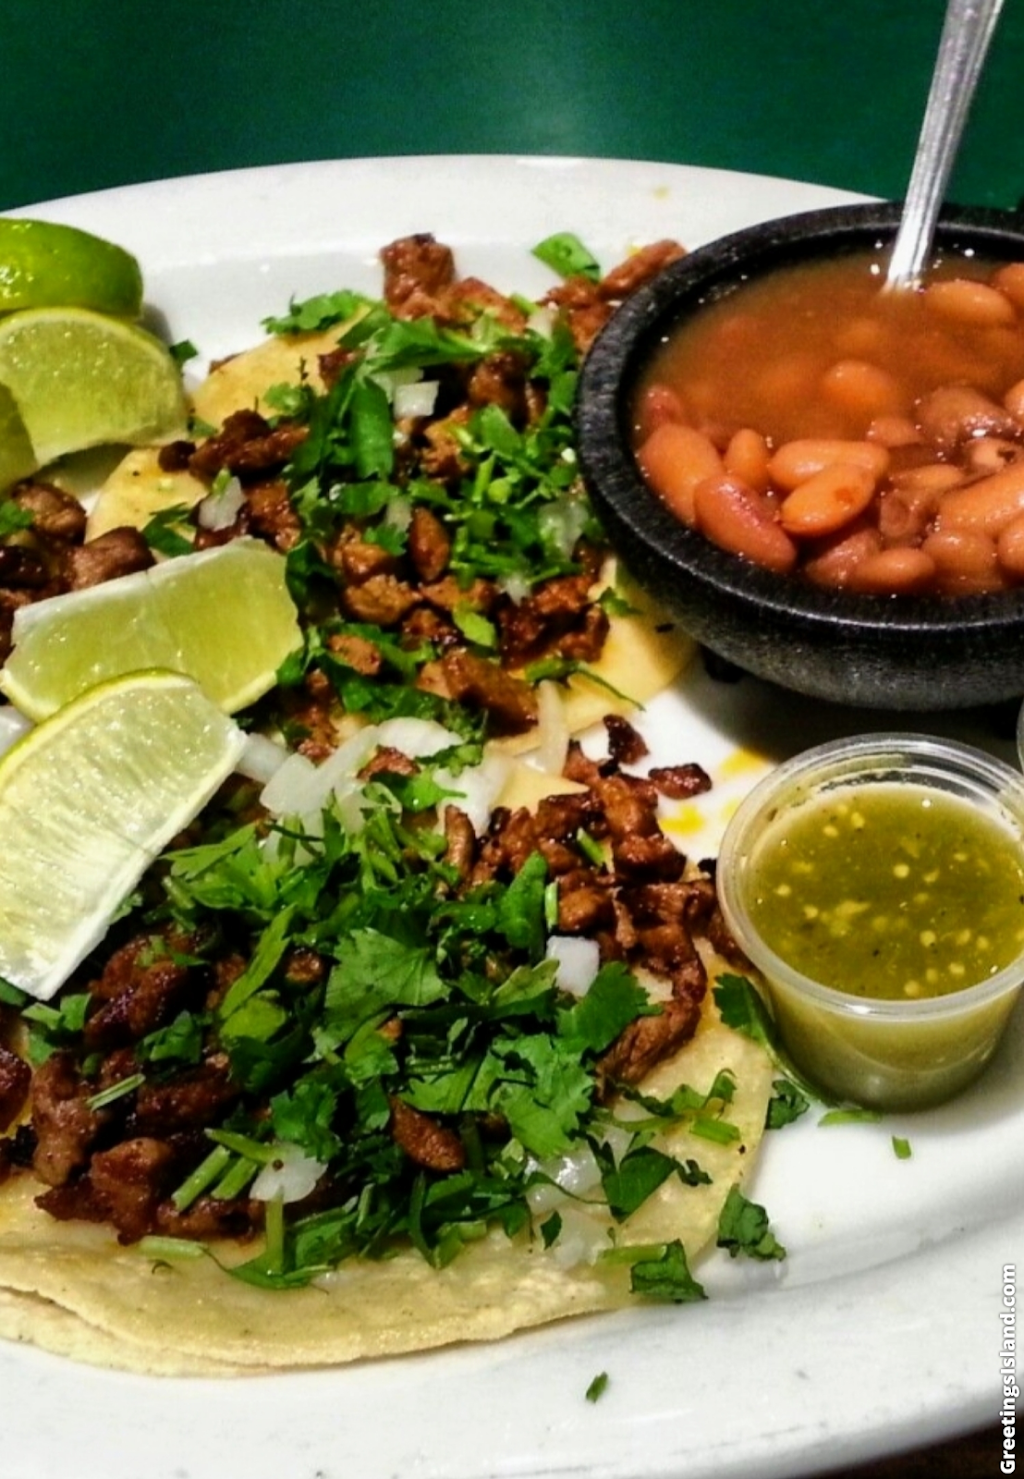 Taqueria El Texano Food Truck | restaurant | 507 W Michigan Ave, Three Rivers, MI 49093, USA | 2697184638 OR +1 269-718-4638